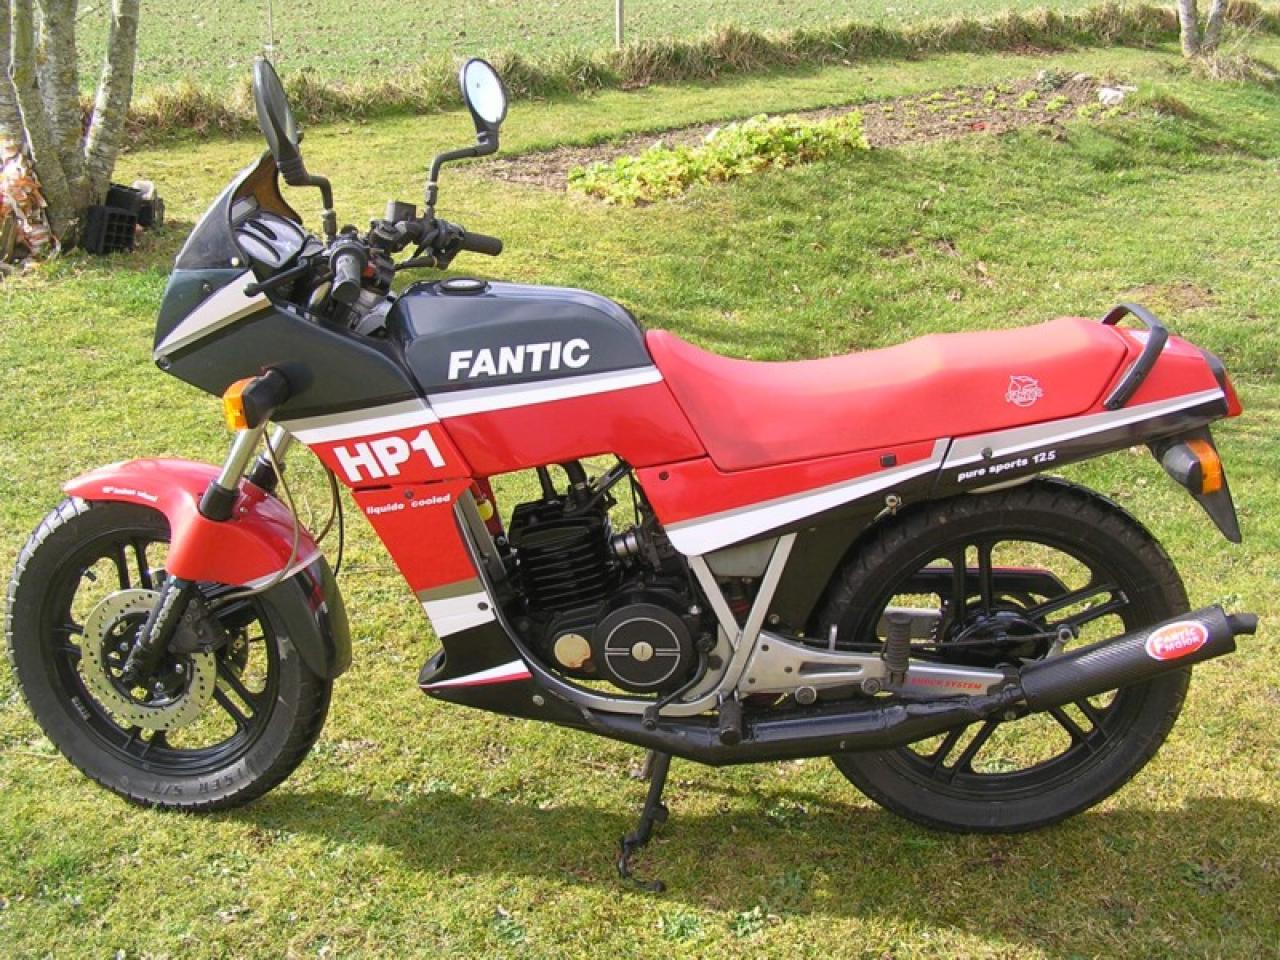 Fantic 125 Sport HP 1 (reduced effect) 1987 images #70737